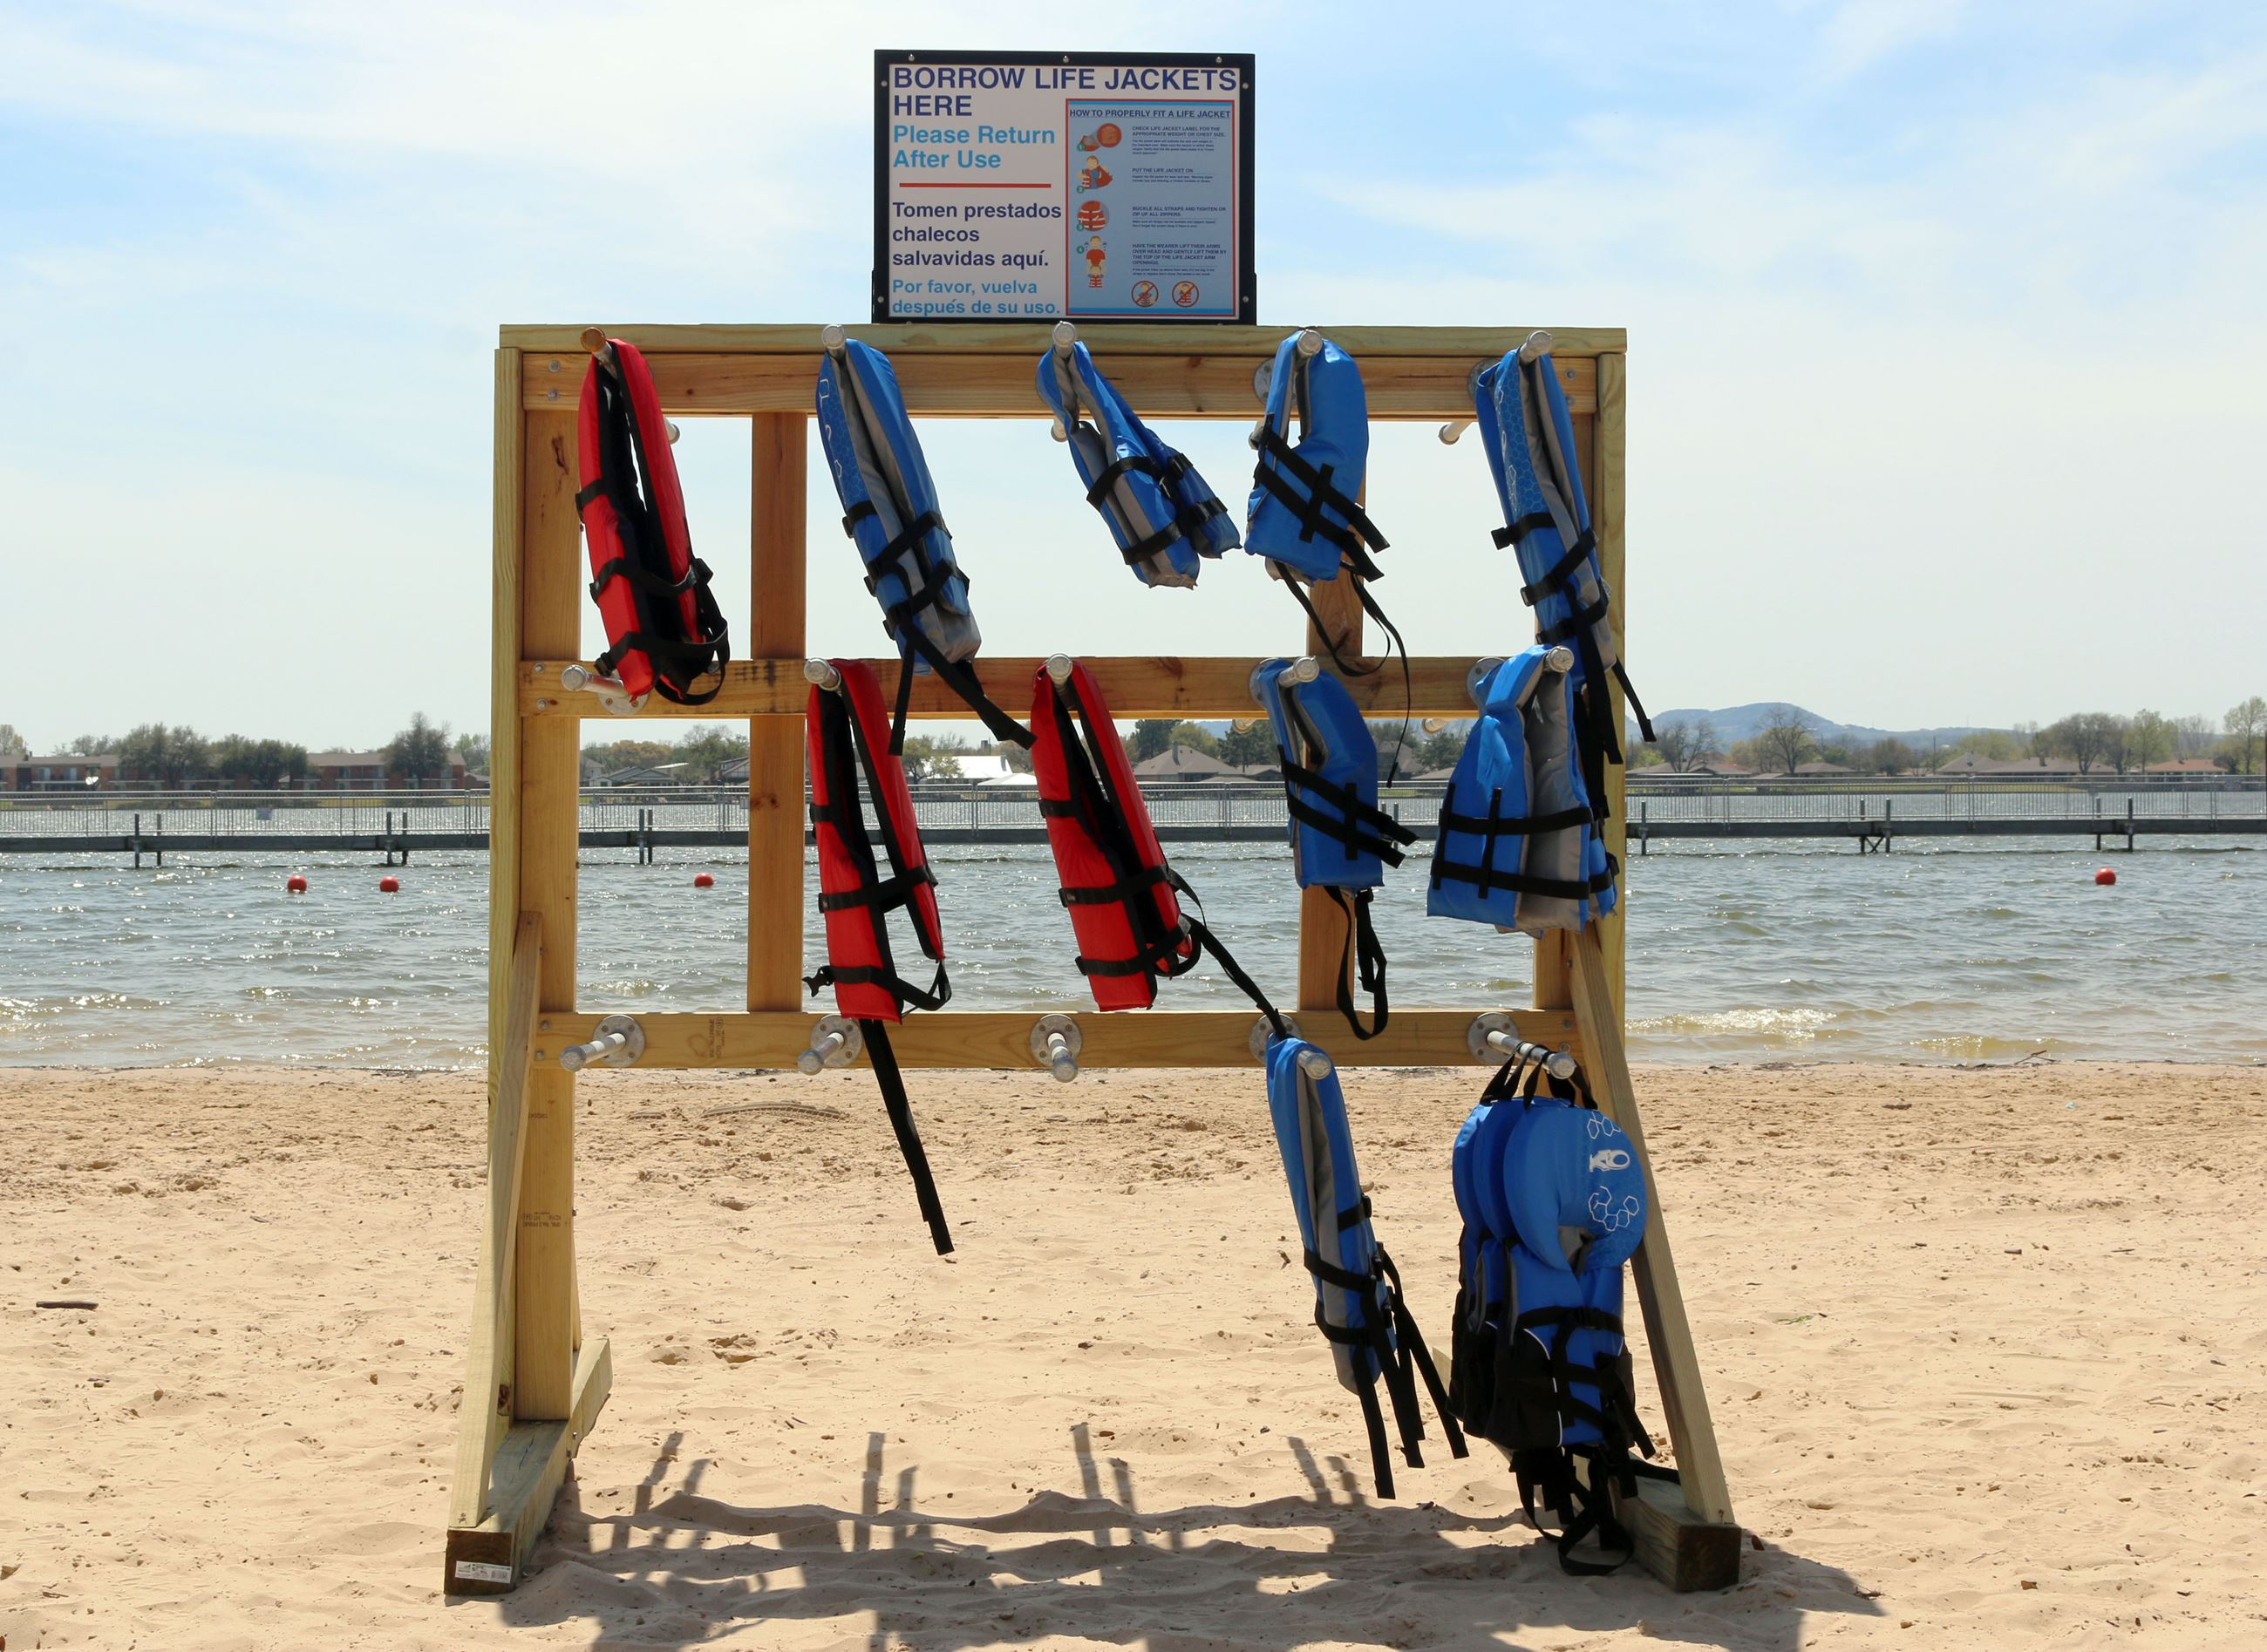 Wooden stand with lifejackets hanging on it on a beach.